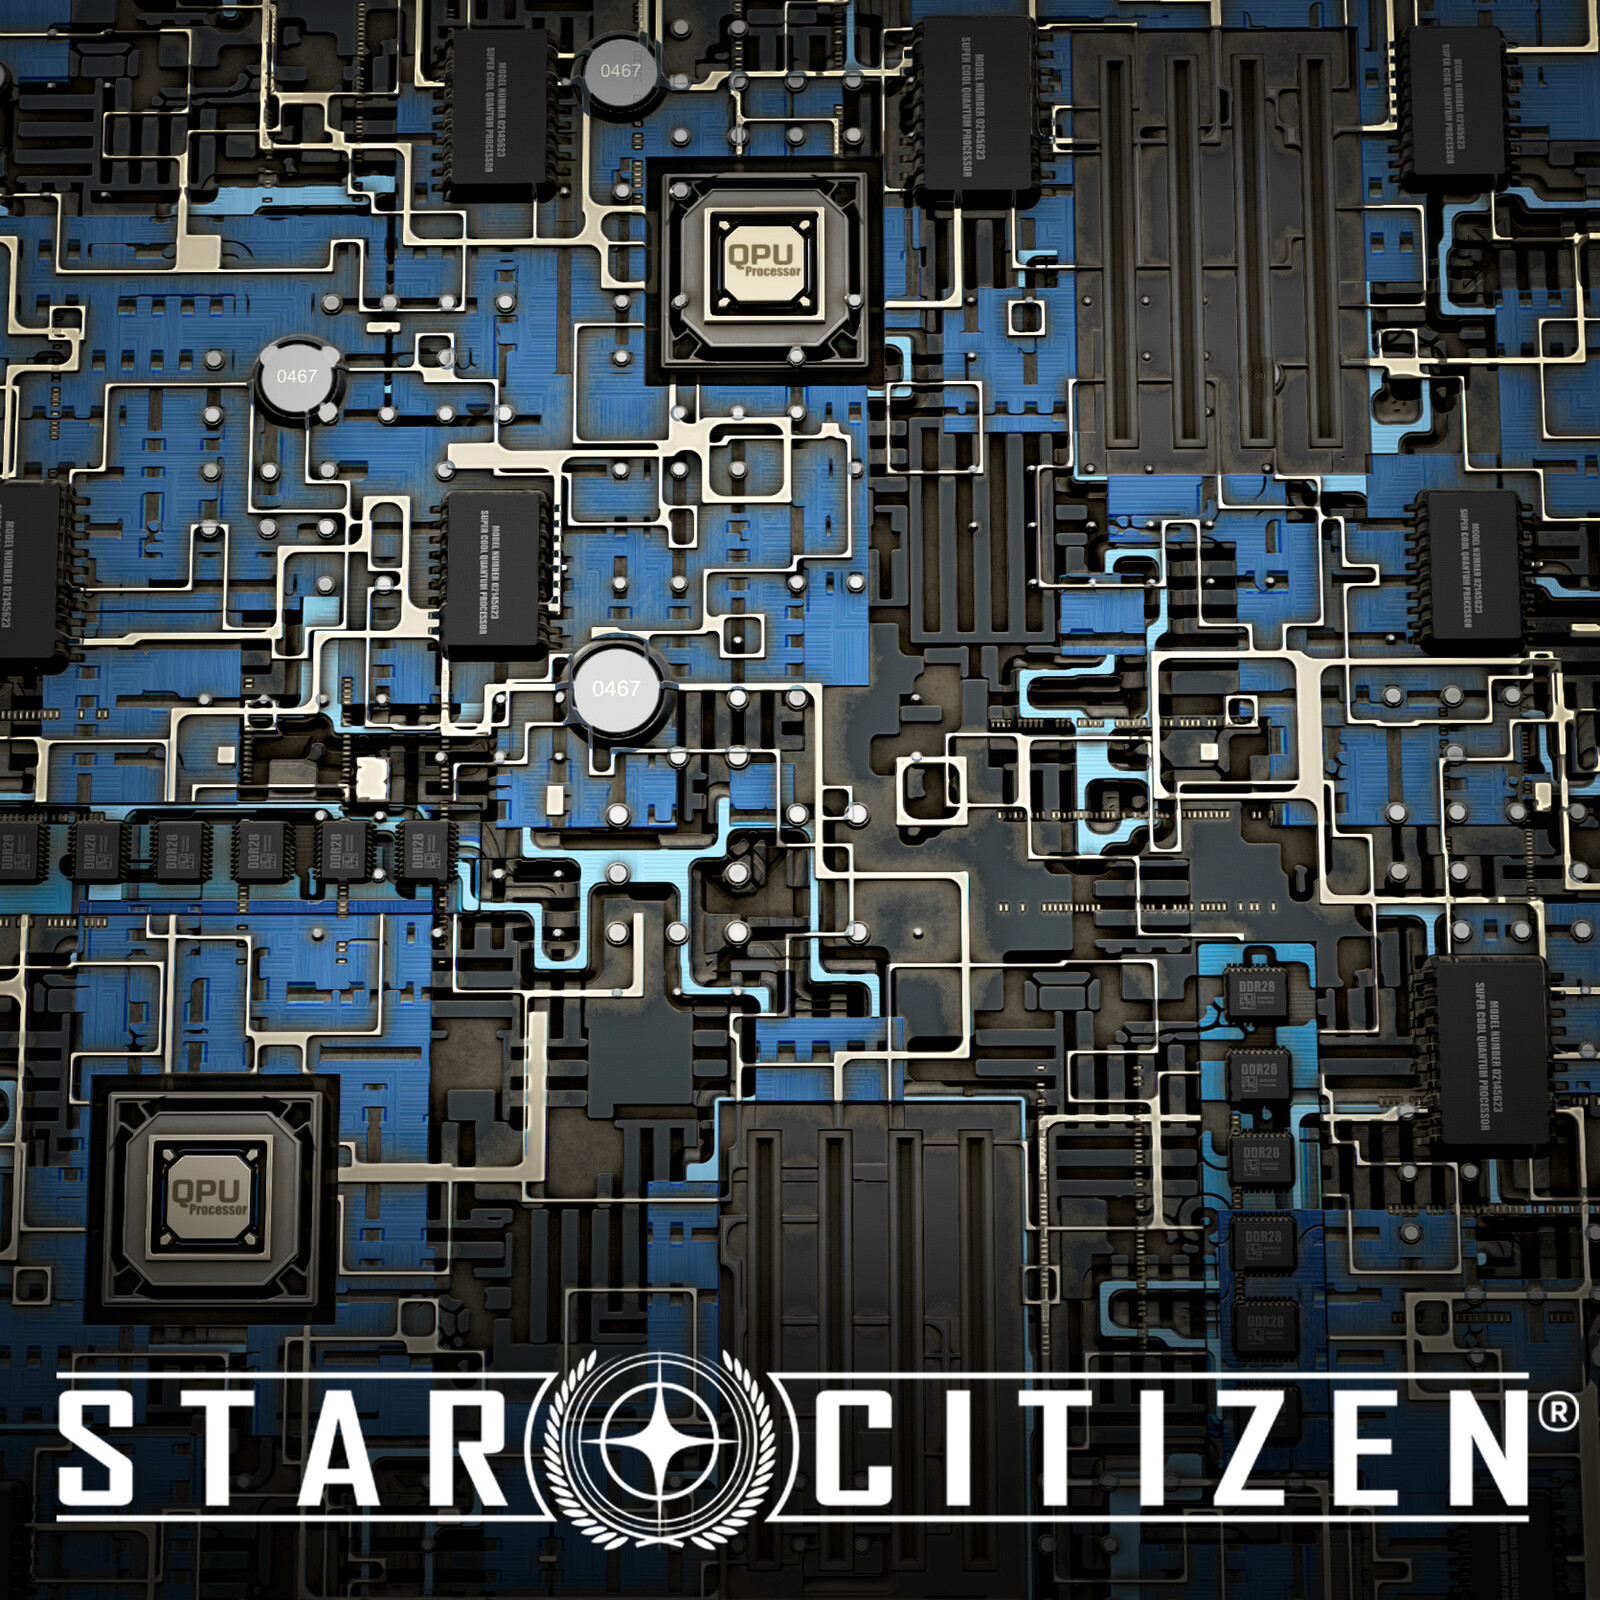 Star Citizen - Circuit board Substance